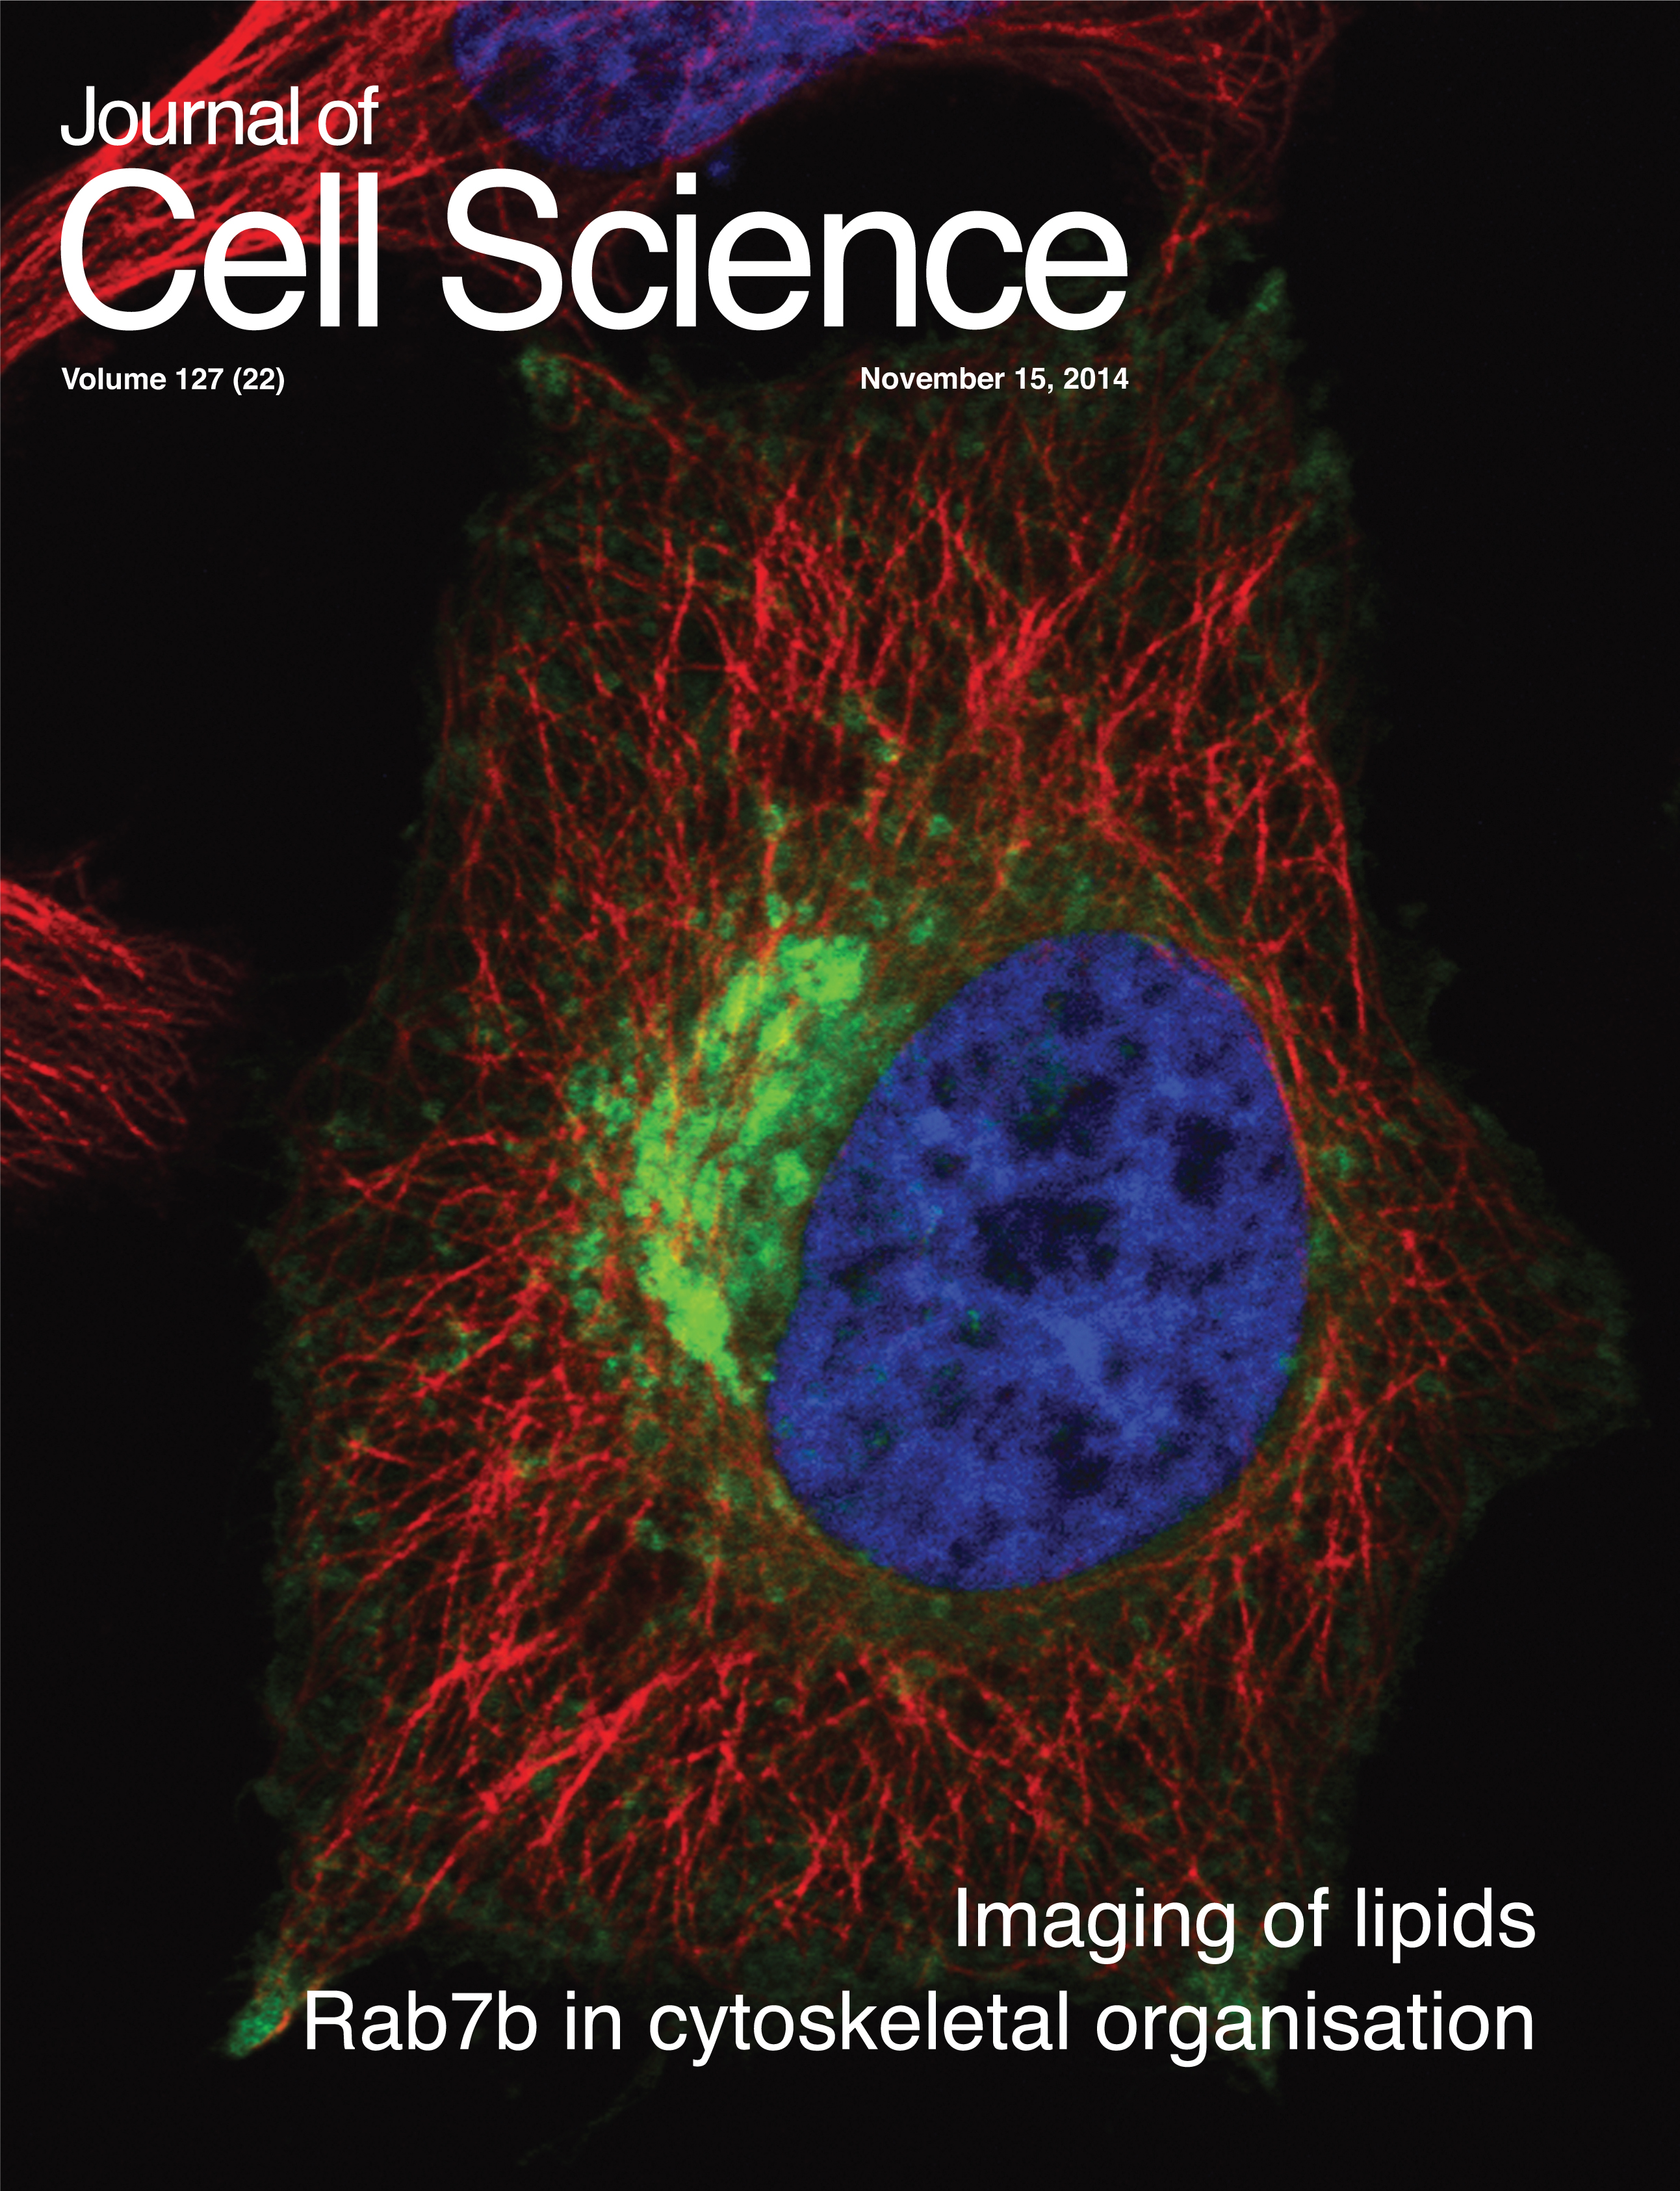 Cover of Journal of Cell Science (November 15, 2014) by Borg M. et al.